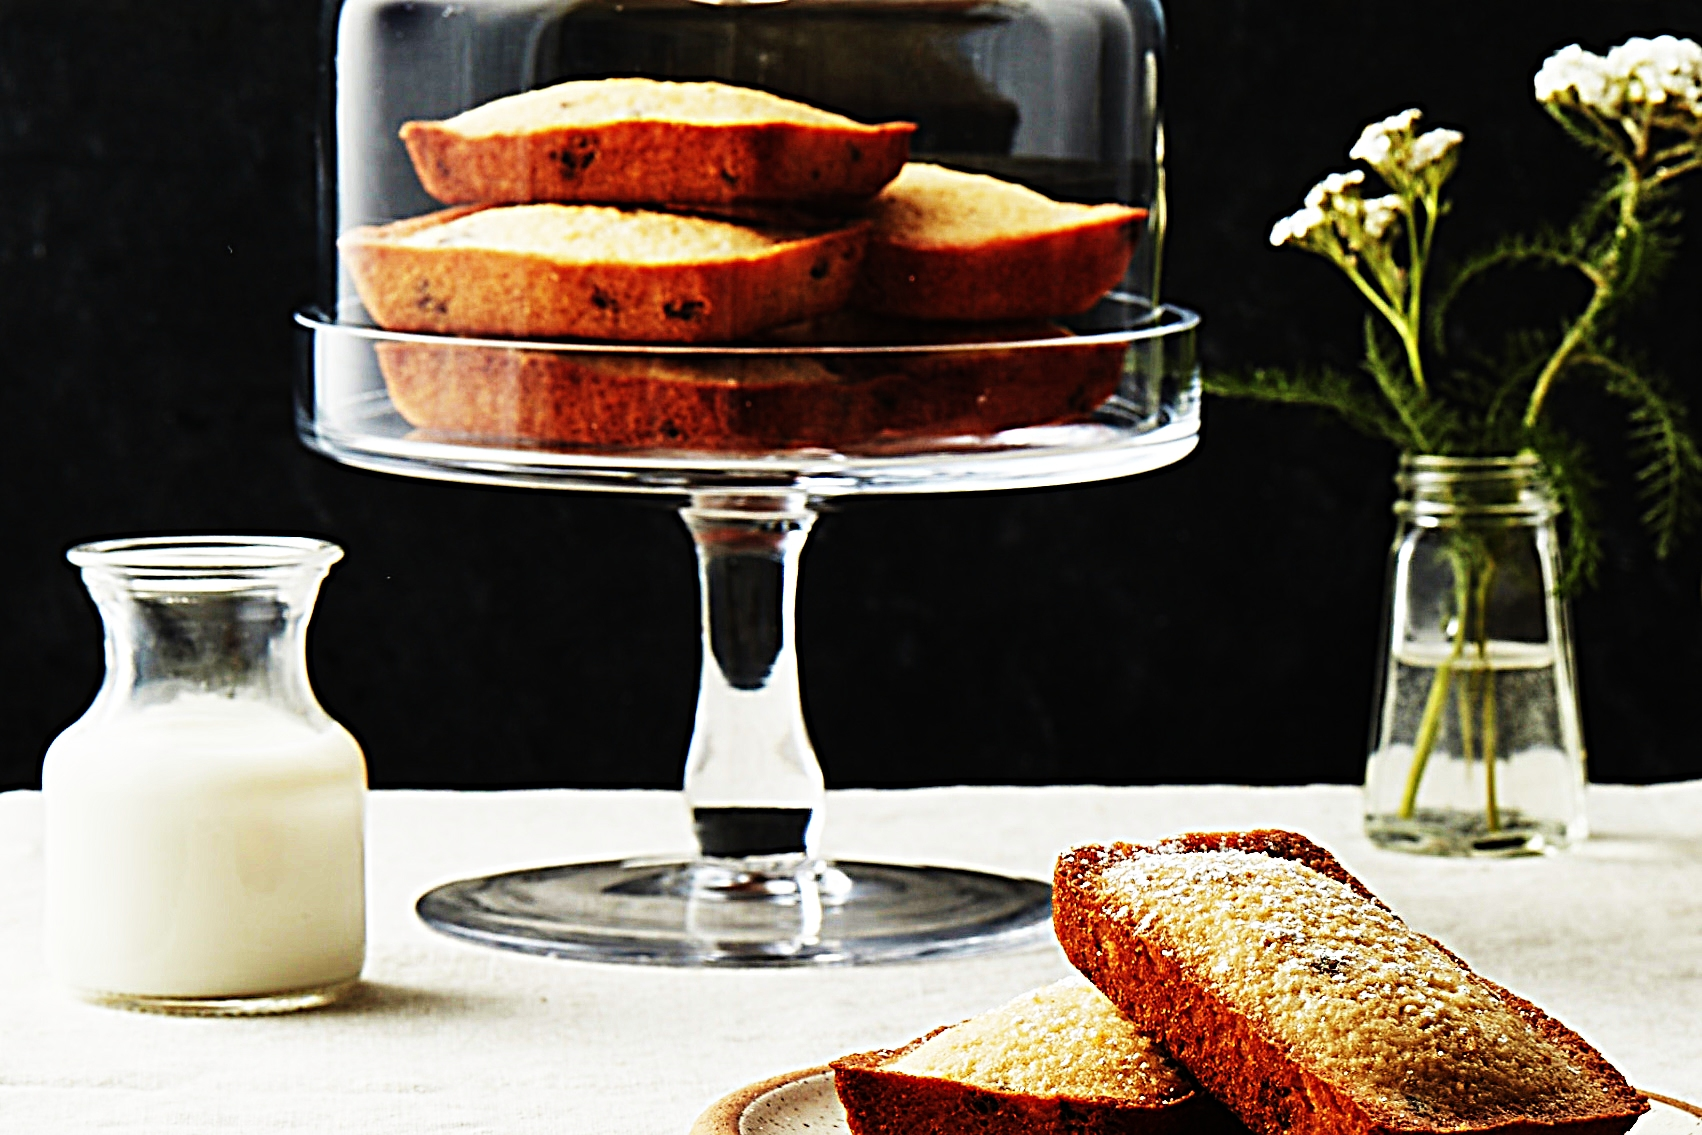 Stupid-Easy Recipe for Almond Financier with Orange Zest and Cocoa Nibs (#1 Top-Rated)